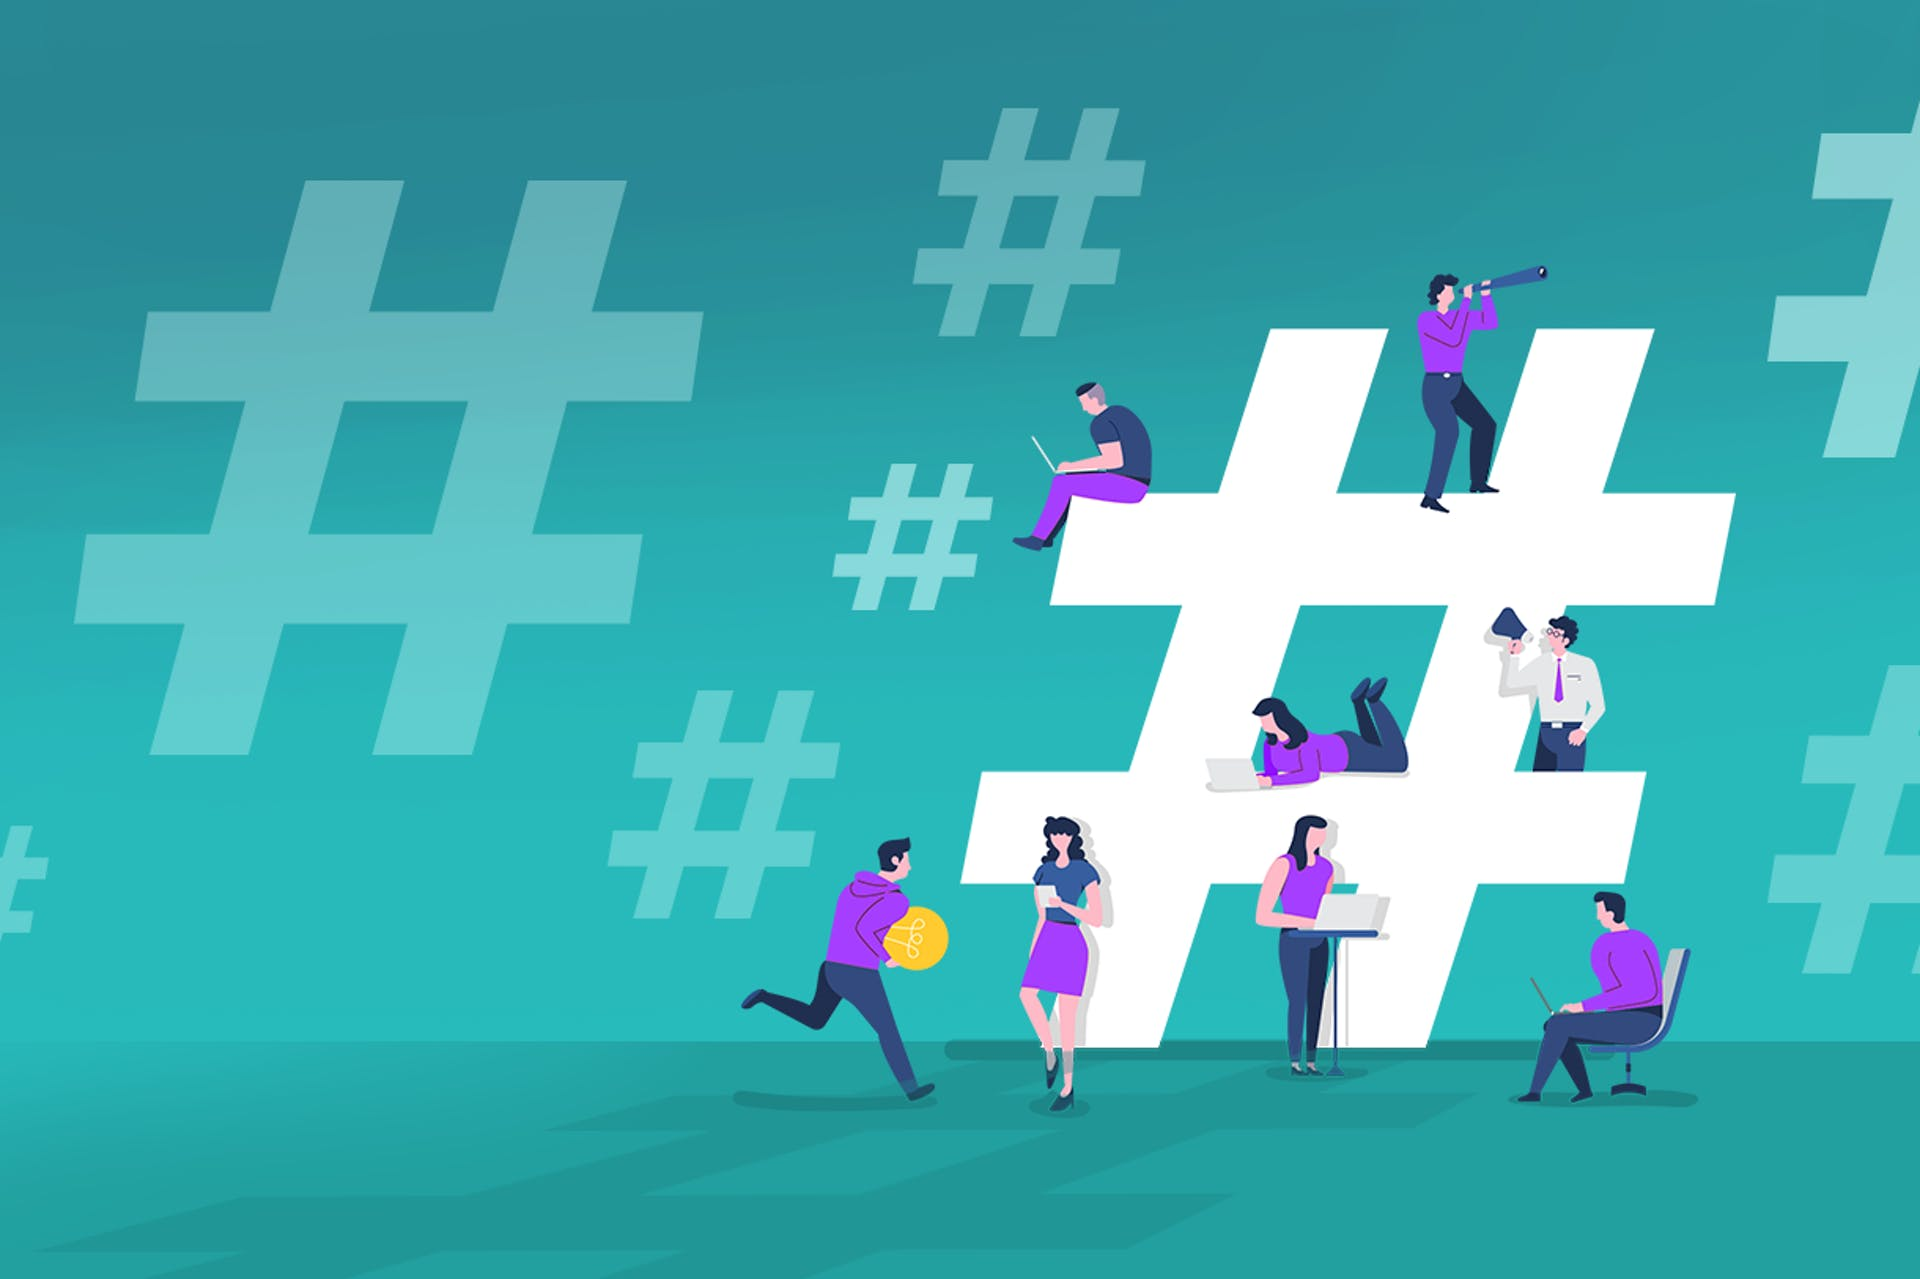 Illustration of floating hashtag icons with people sitting on one large hashtag using various electronic devices